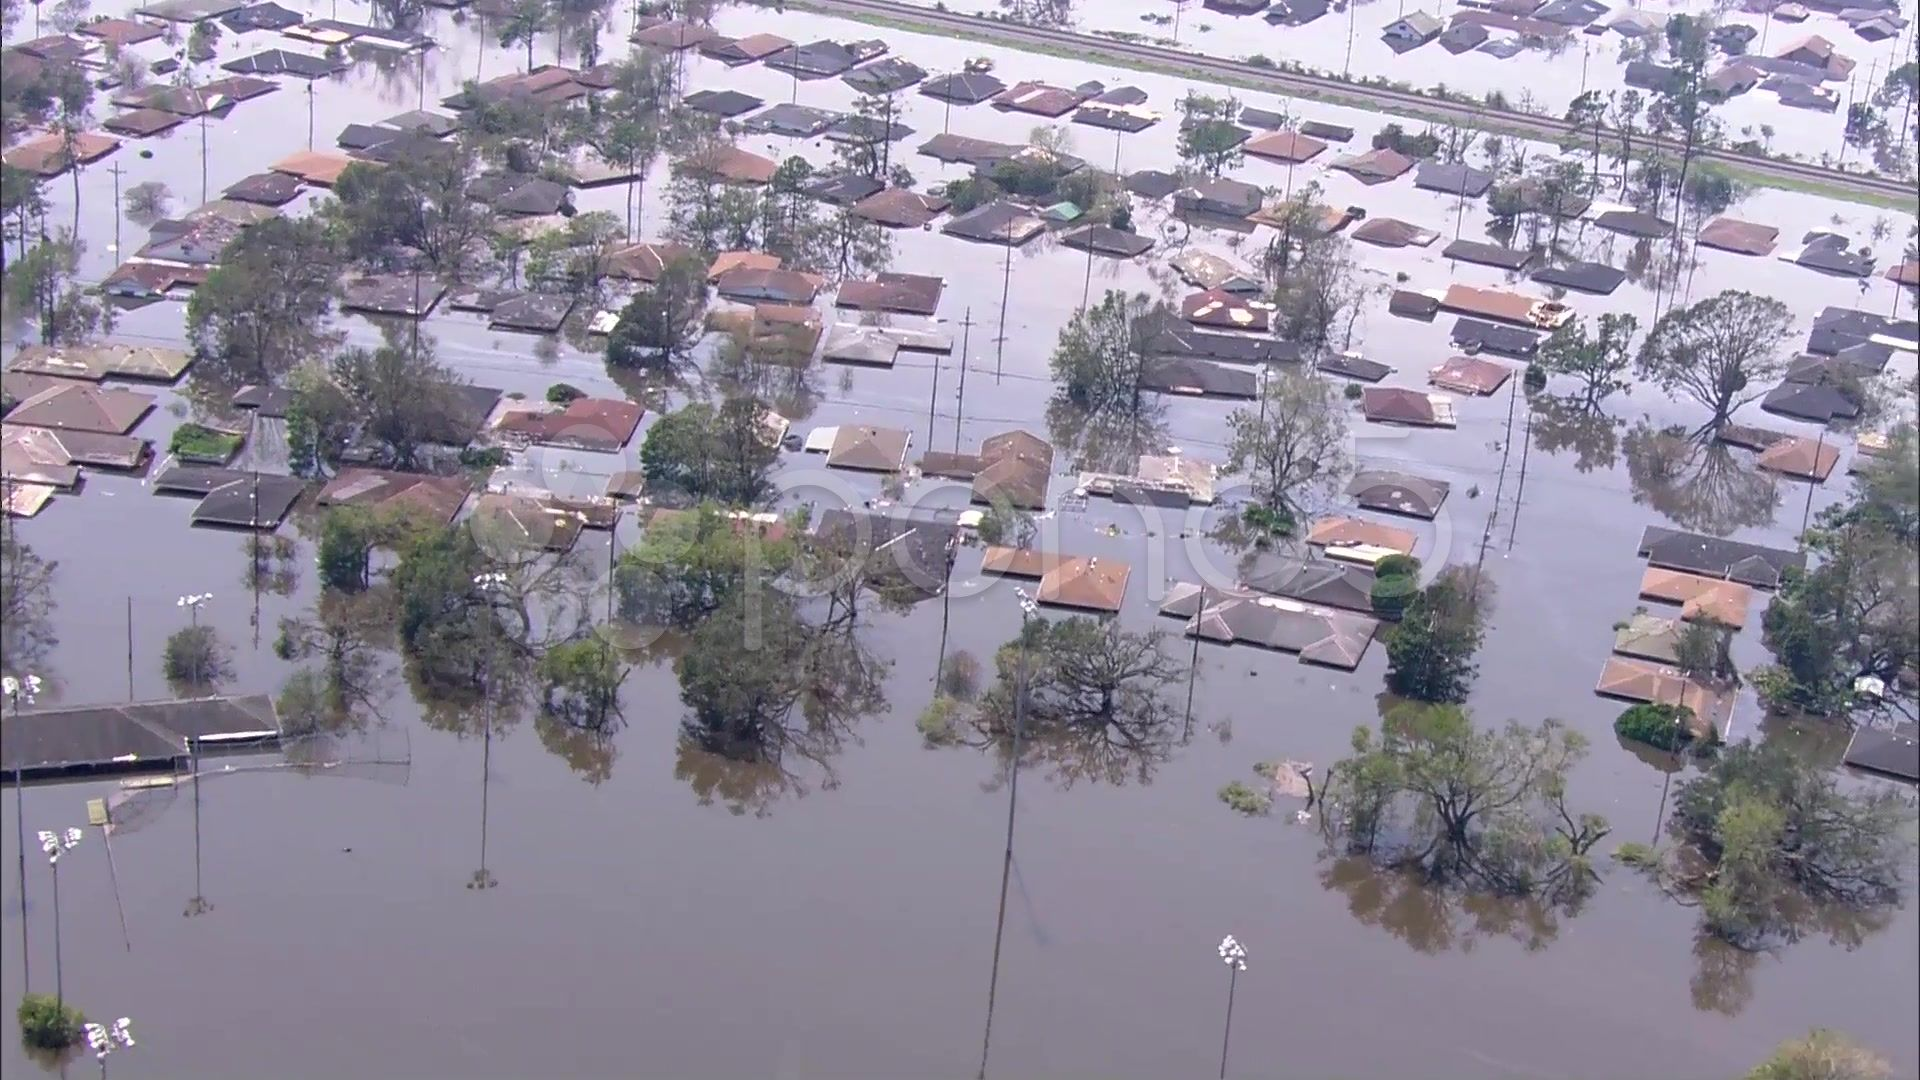 Katrina Hurricane Damage Stock Footage Hurricane Katrina Damage Footage Hurricane Damage Hurricane Katrina